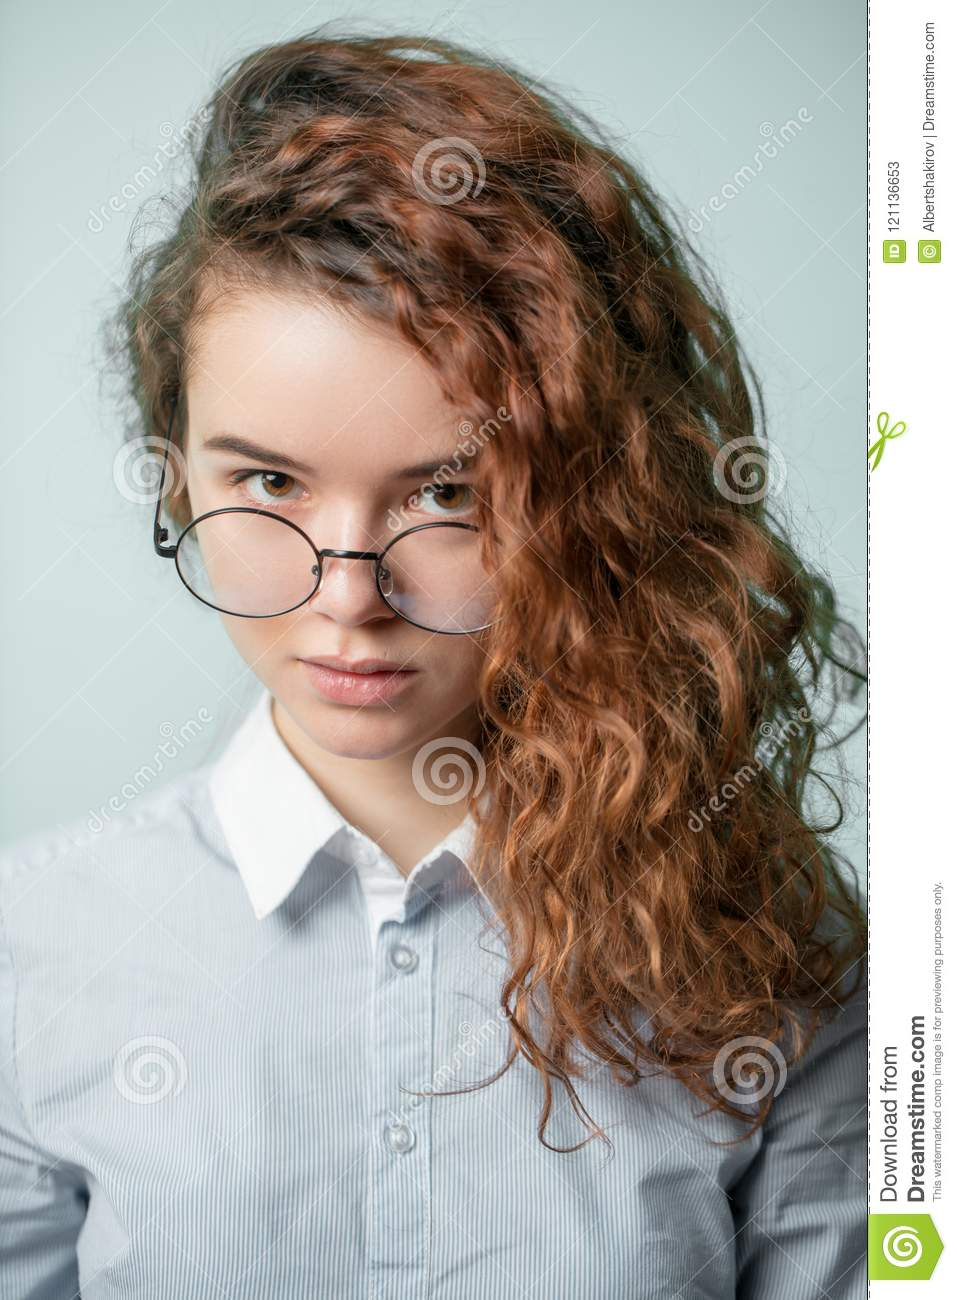 Close Up Portrait Of Serious Girl With Long Red Curly Hair